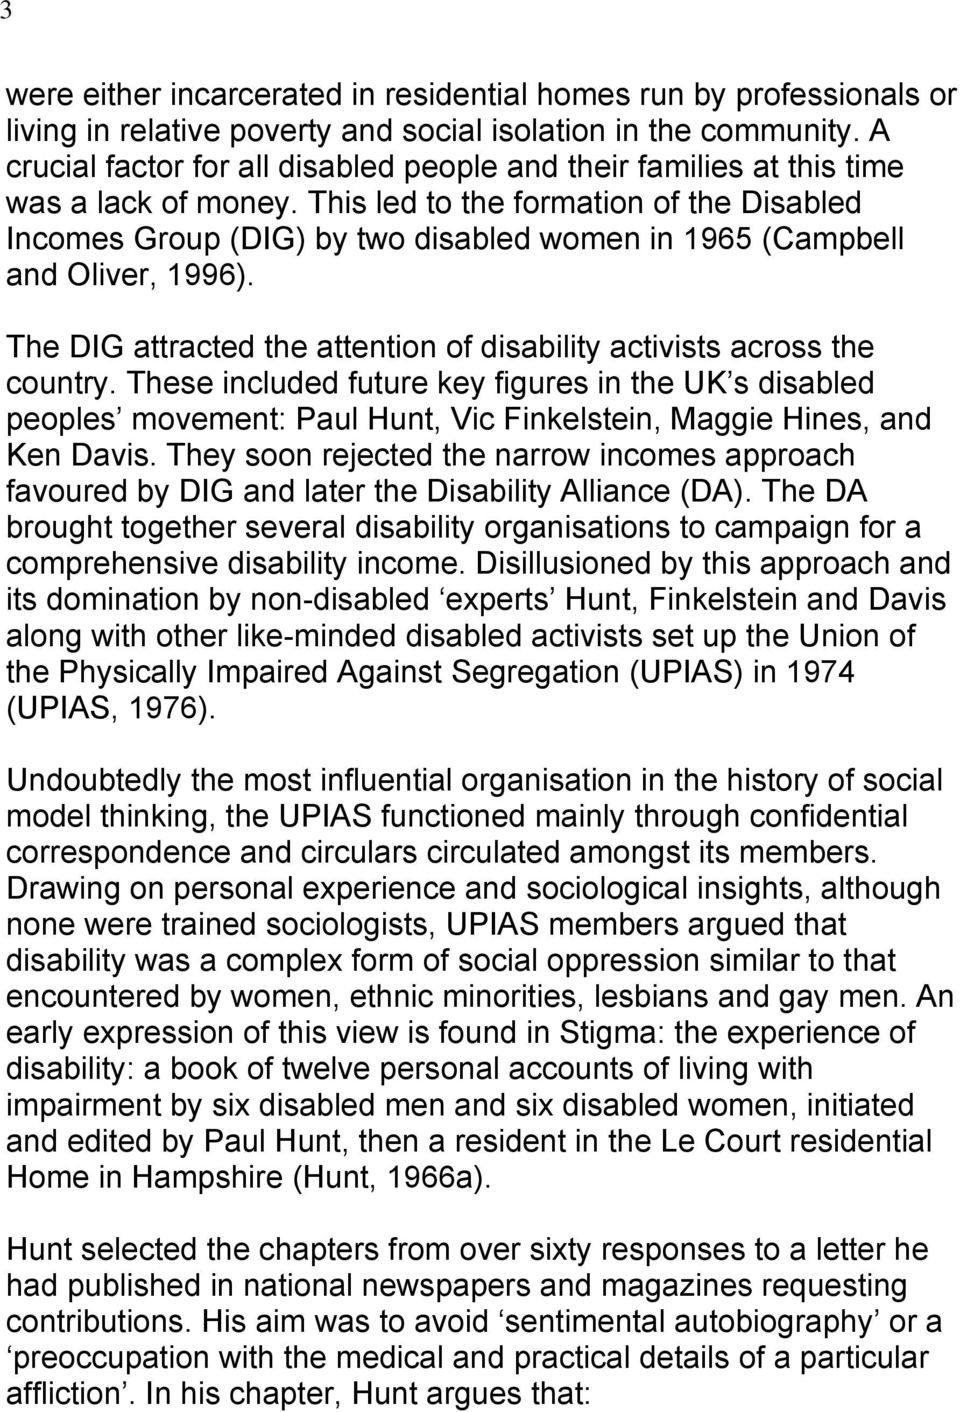 This led to the formation of the Disabled Incomes Group (DIG) by two disabled women in 1965 (Campbell and Oliver, 1996). The DIG attracted the attention of disability activists across the country.